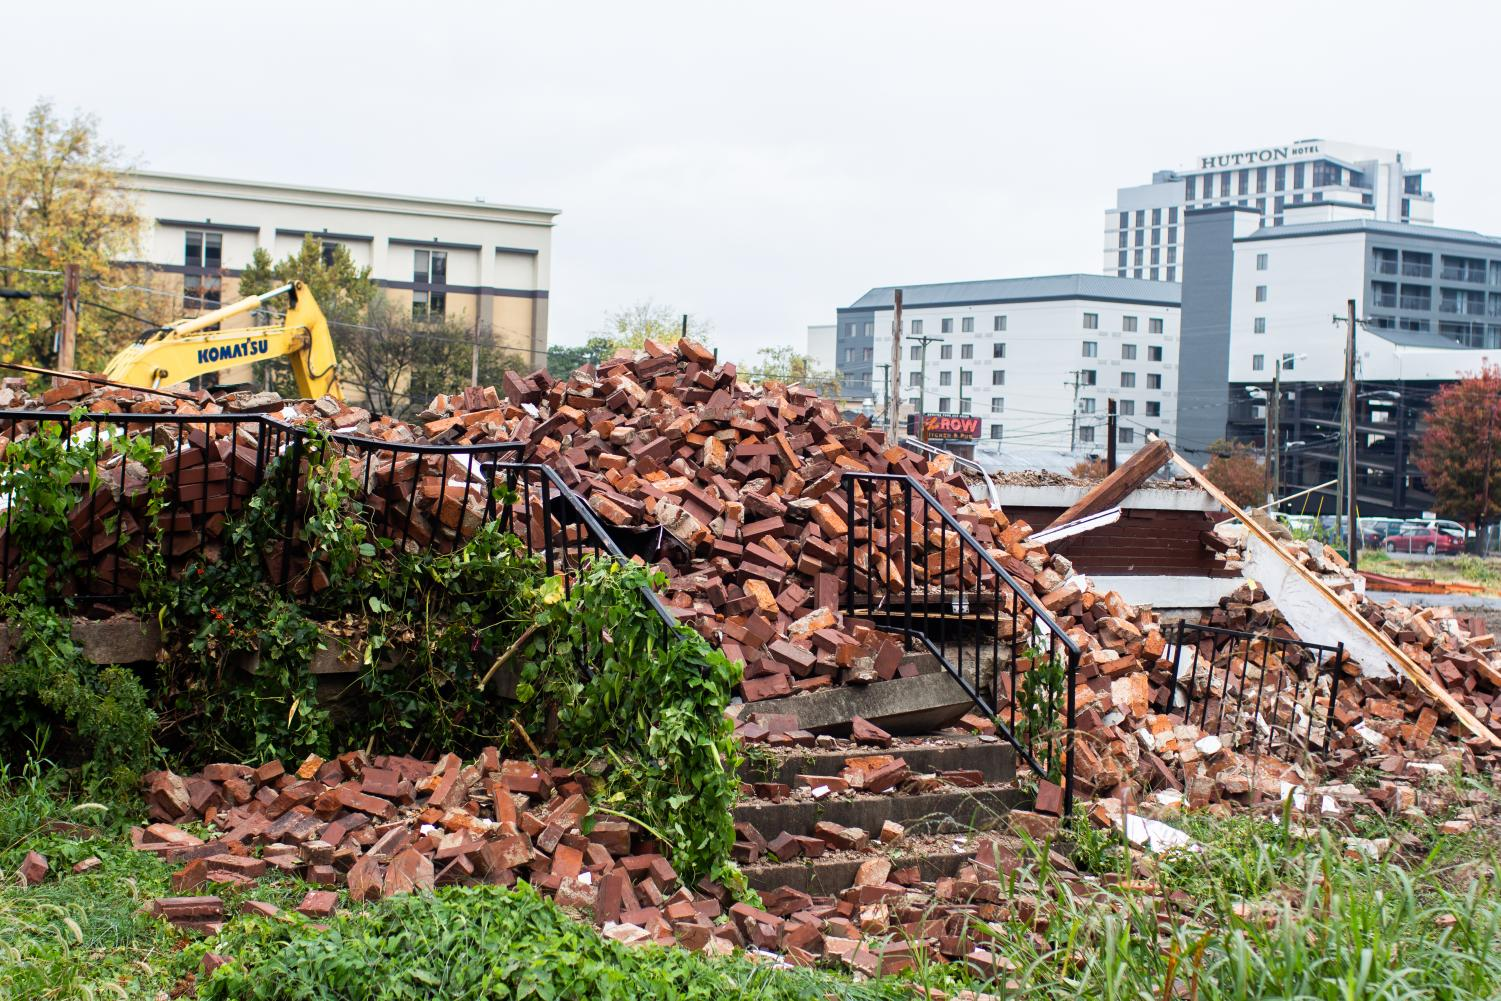 The remains of the Manuel Cuevas house in Midtown, which was torn down in order to build graduate student housing.